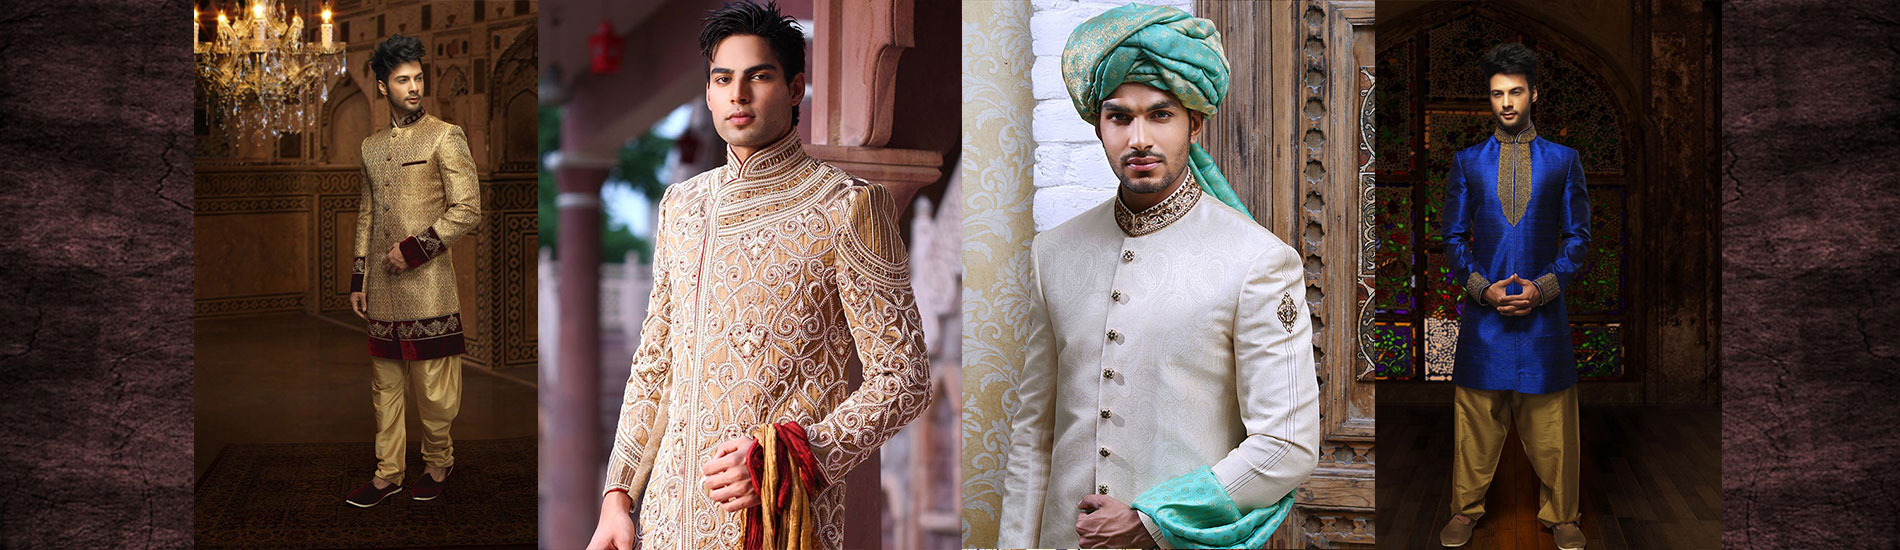 four men wedding dresses